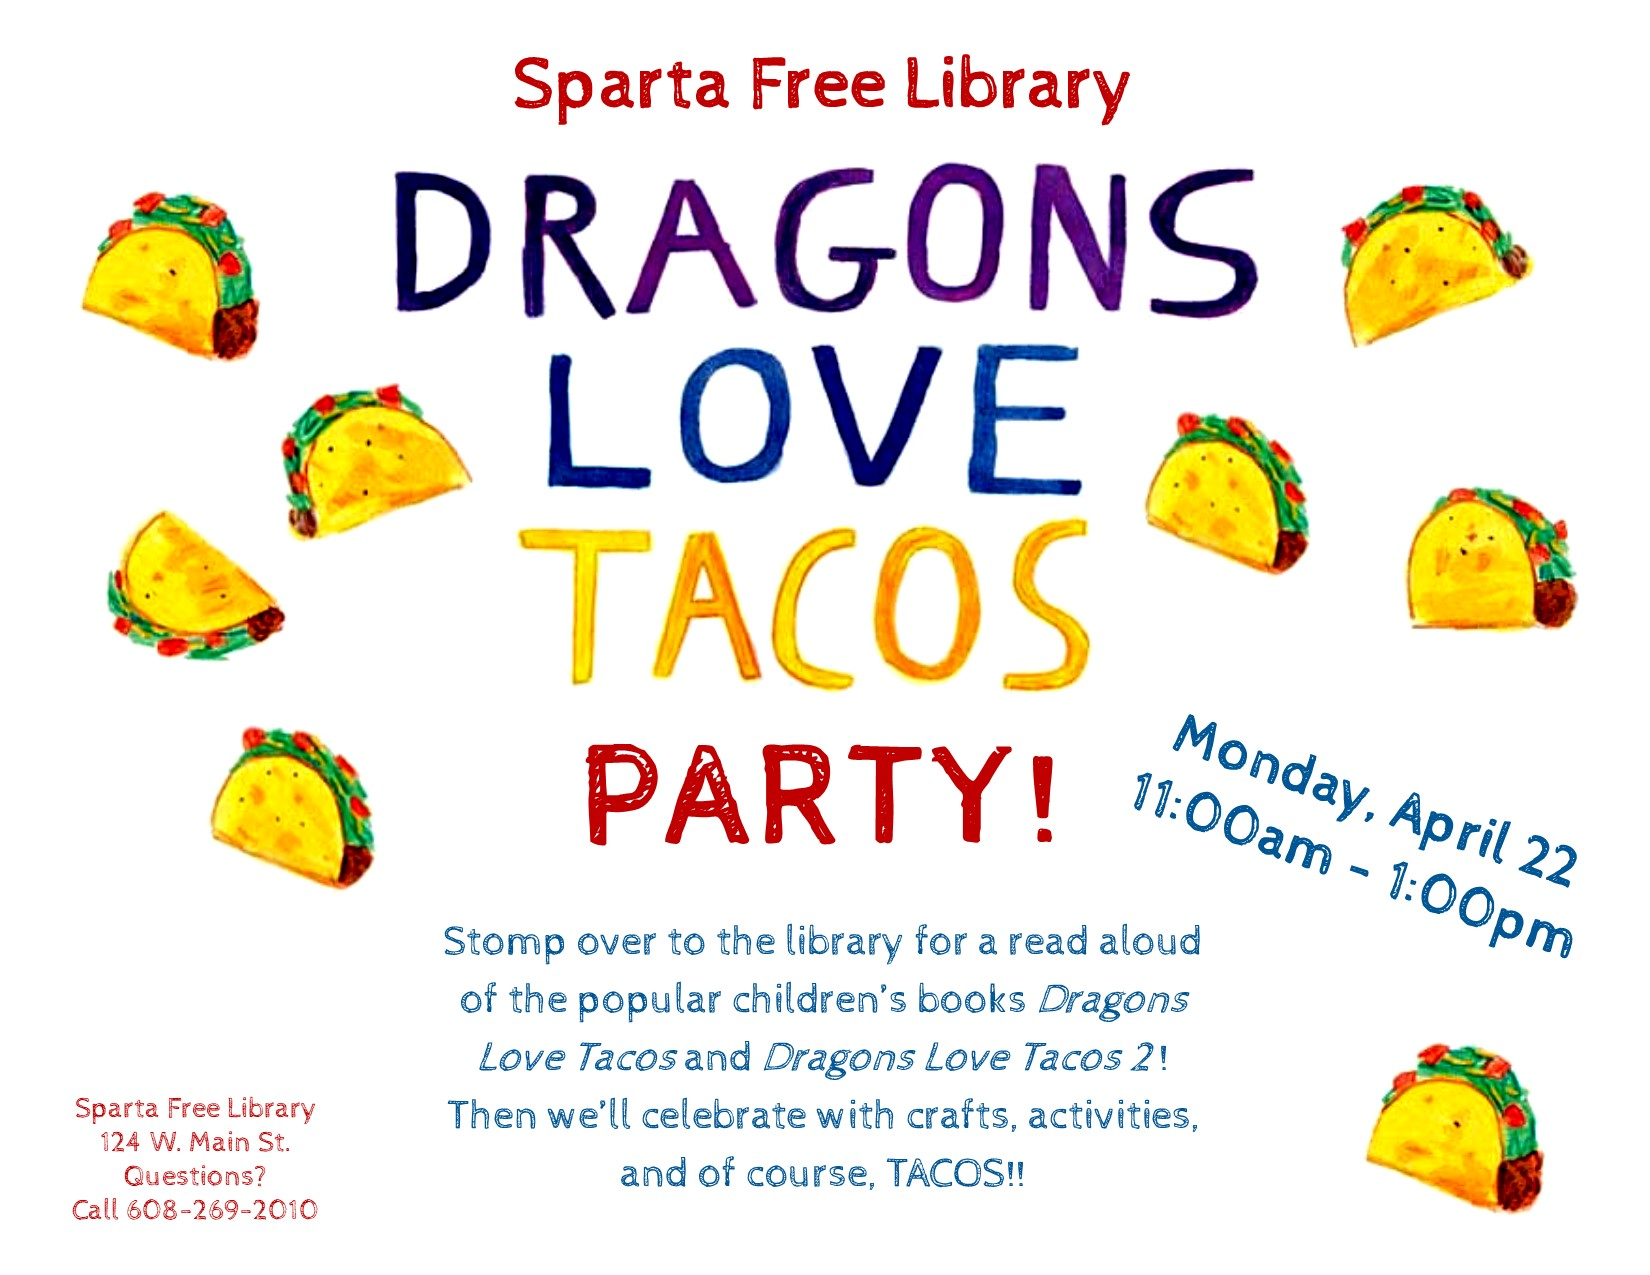 Dragons Love Tacos Party @ Sparta Free Library